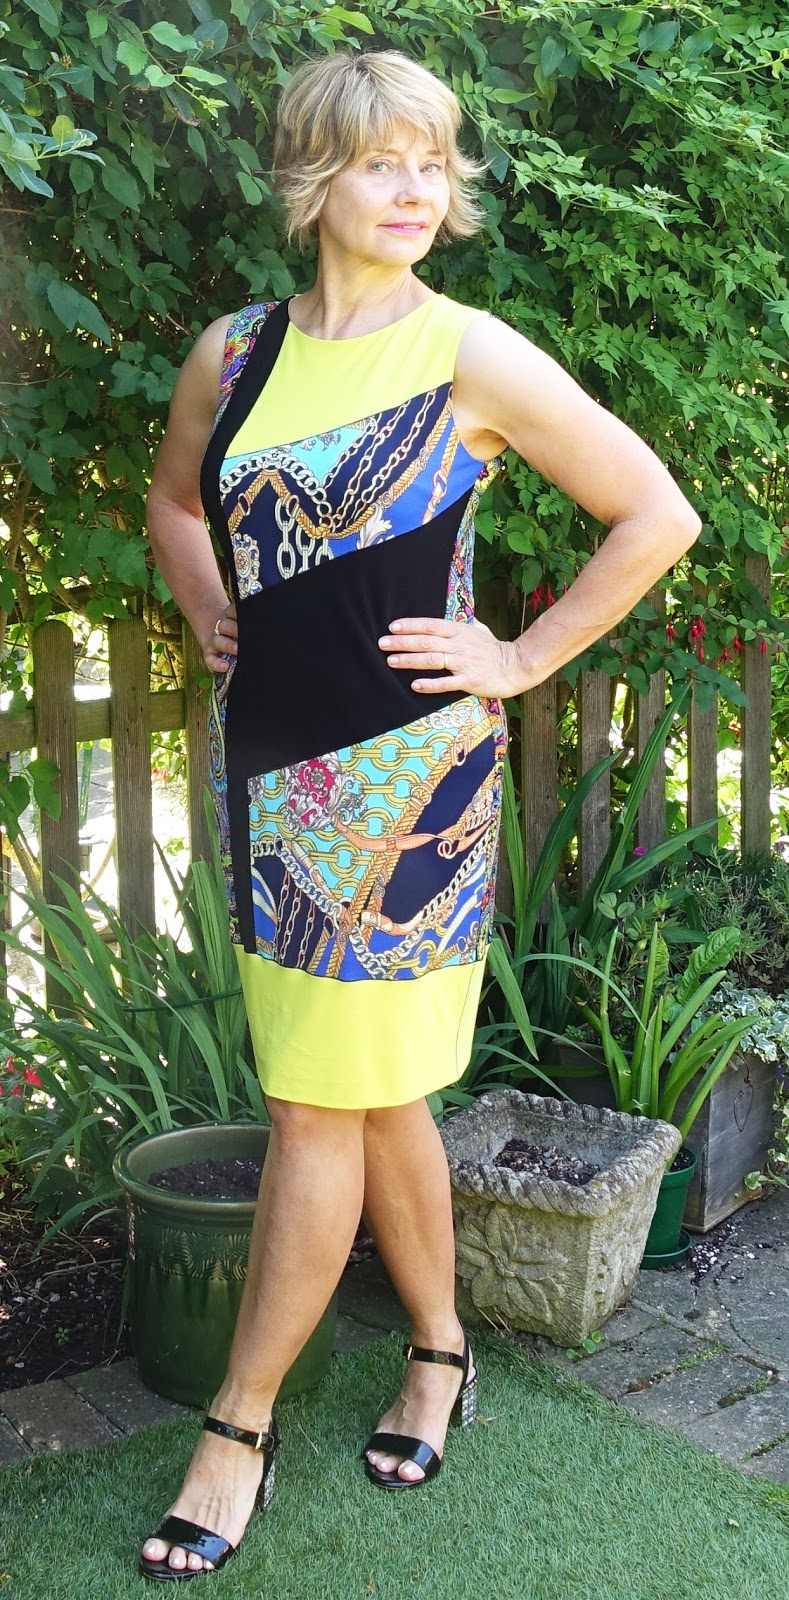 What can be more flattering for the over-40s woman than a Joseph Ribkoff dress?